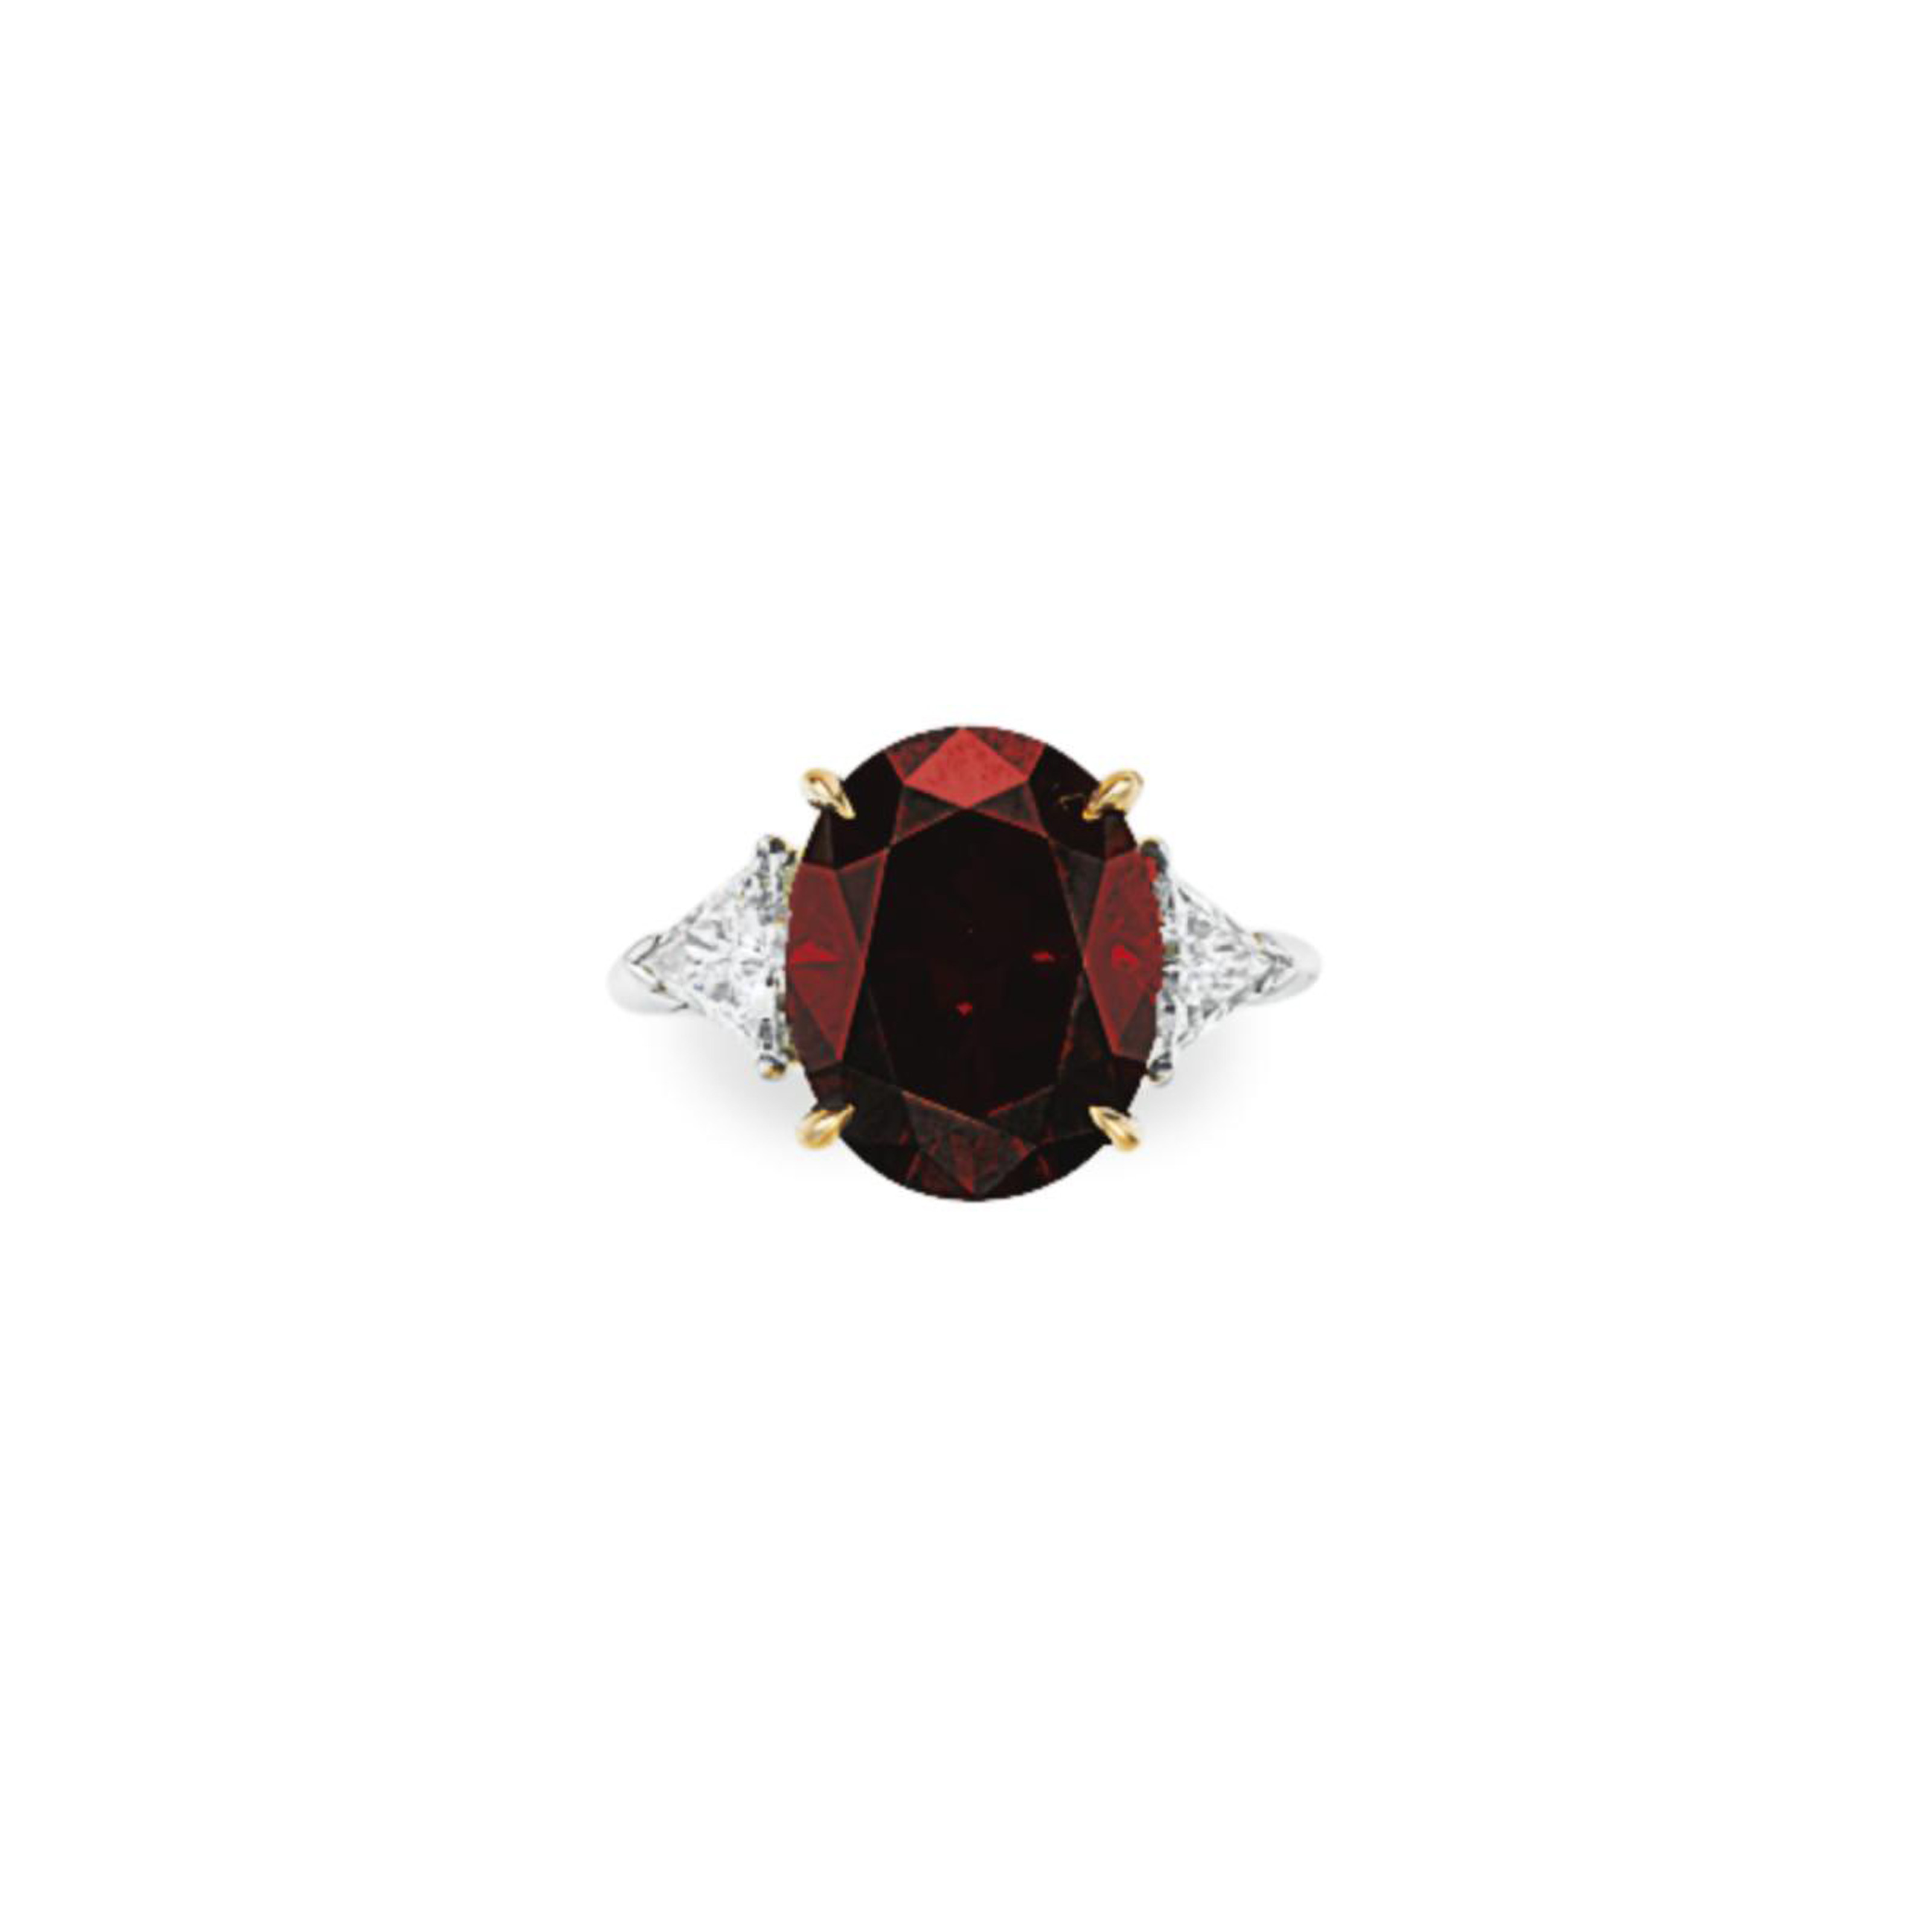 AN UNUSUAL COLORED DIAMOND AND